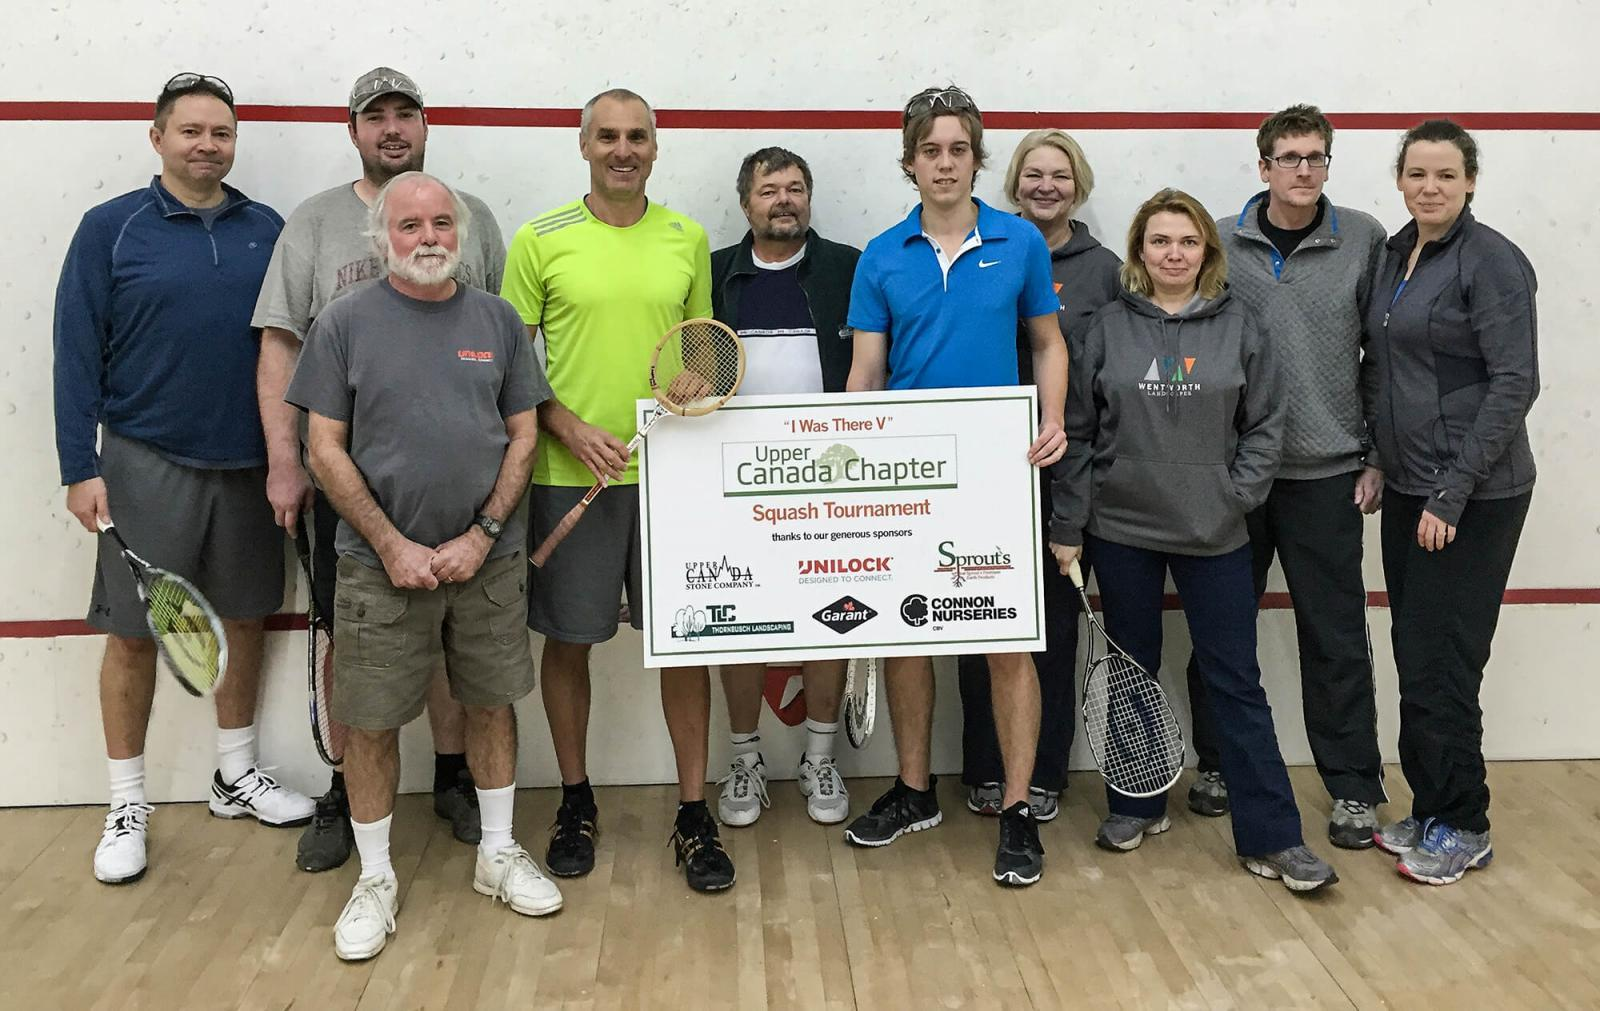 Upper Canada Chapter members prove competition can be fun at the squash tournament.